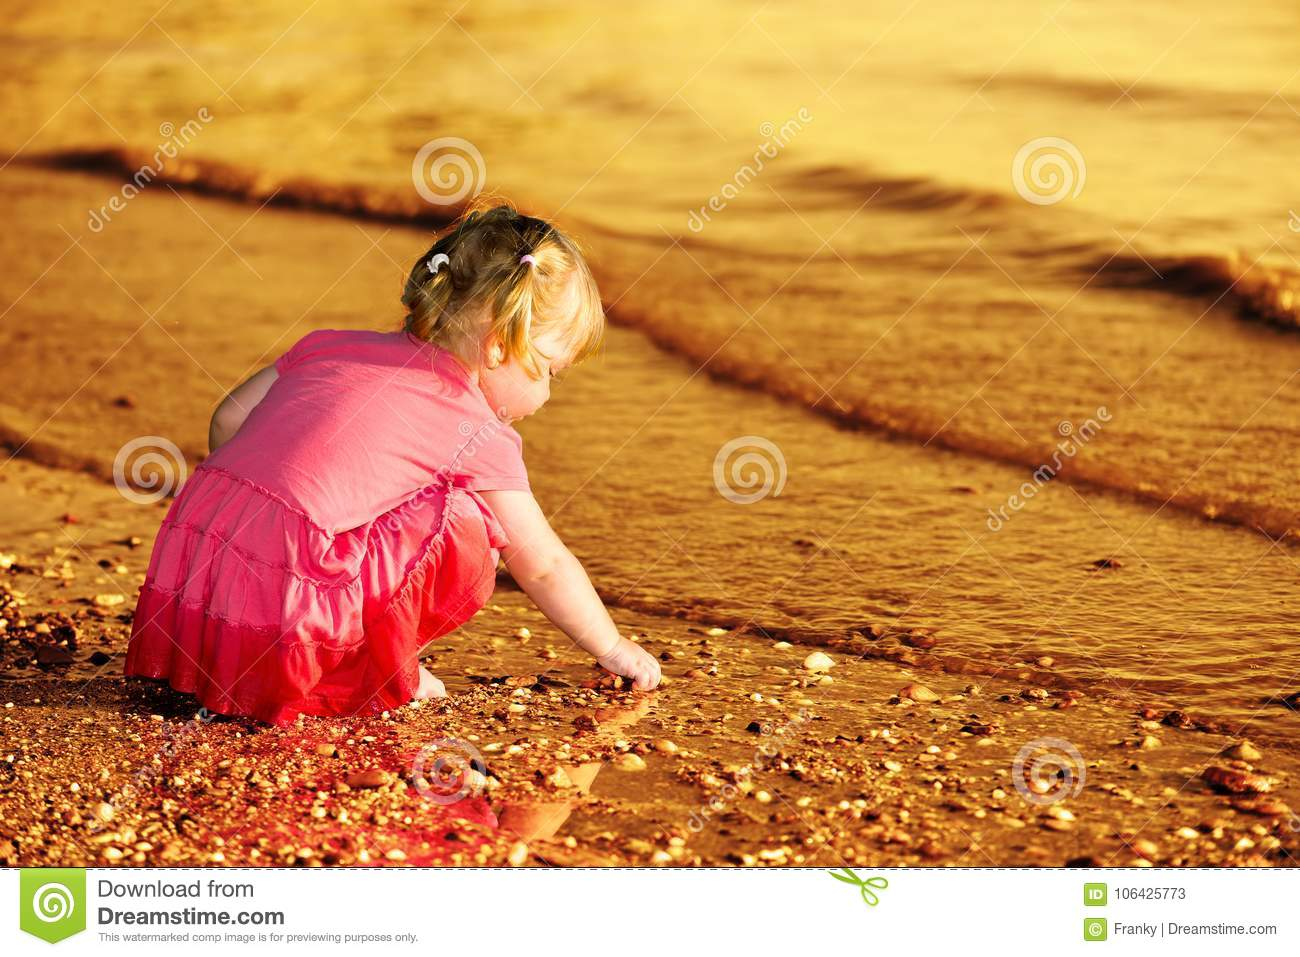 2-3 years old little girl playing with pebbles at the riverbank